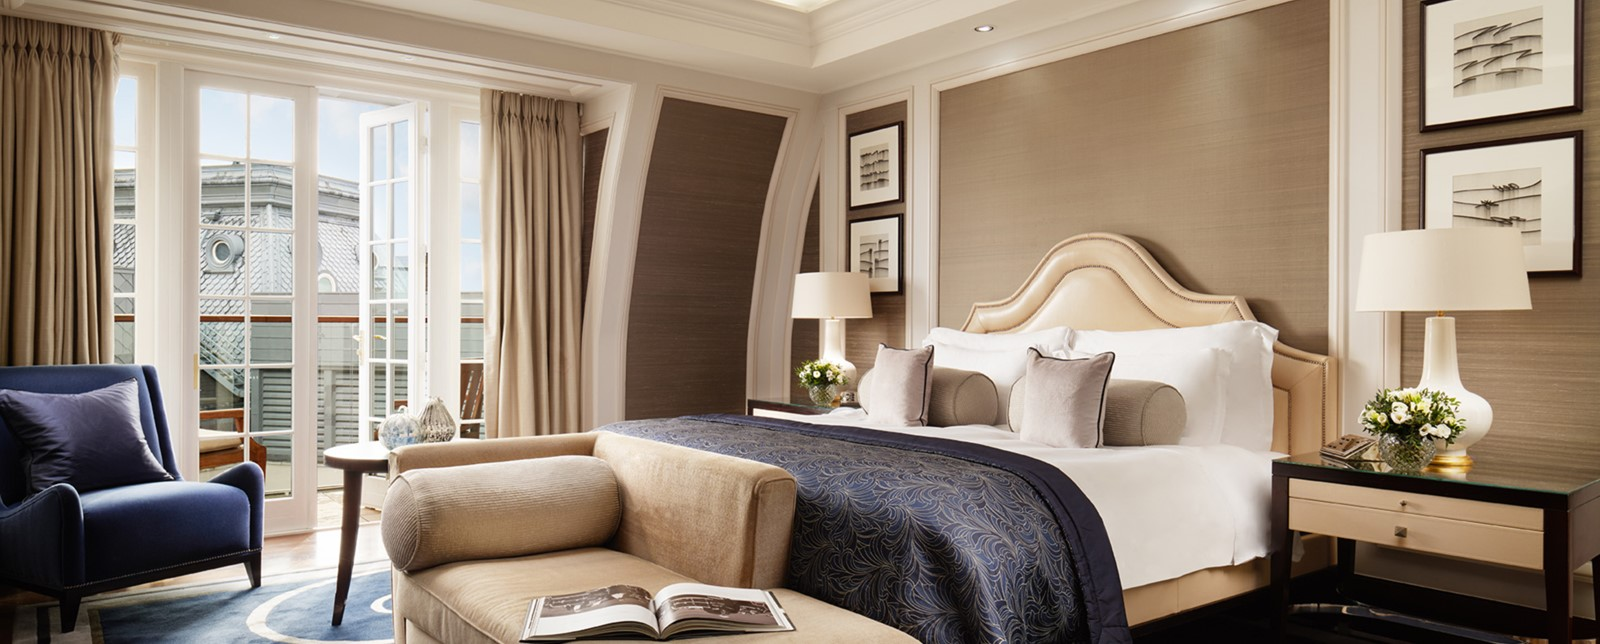 corinthia london musicians penthouse bedroom